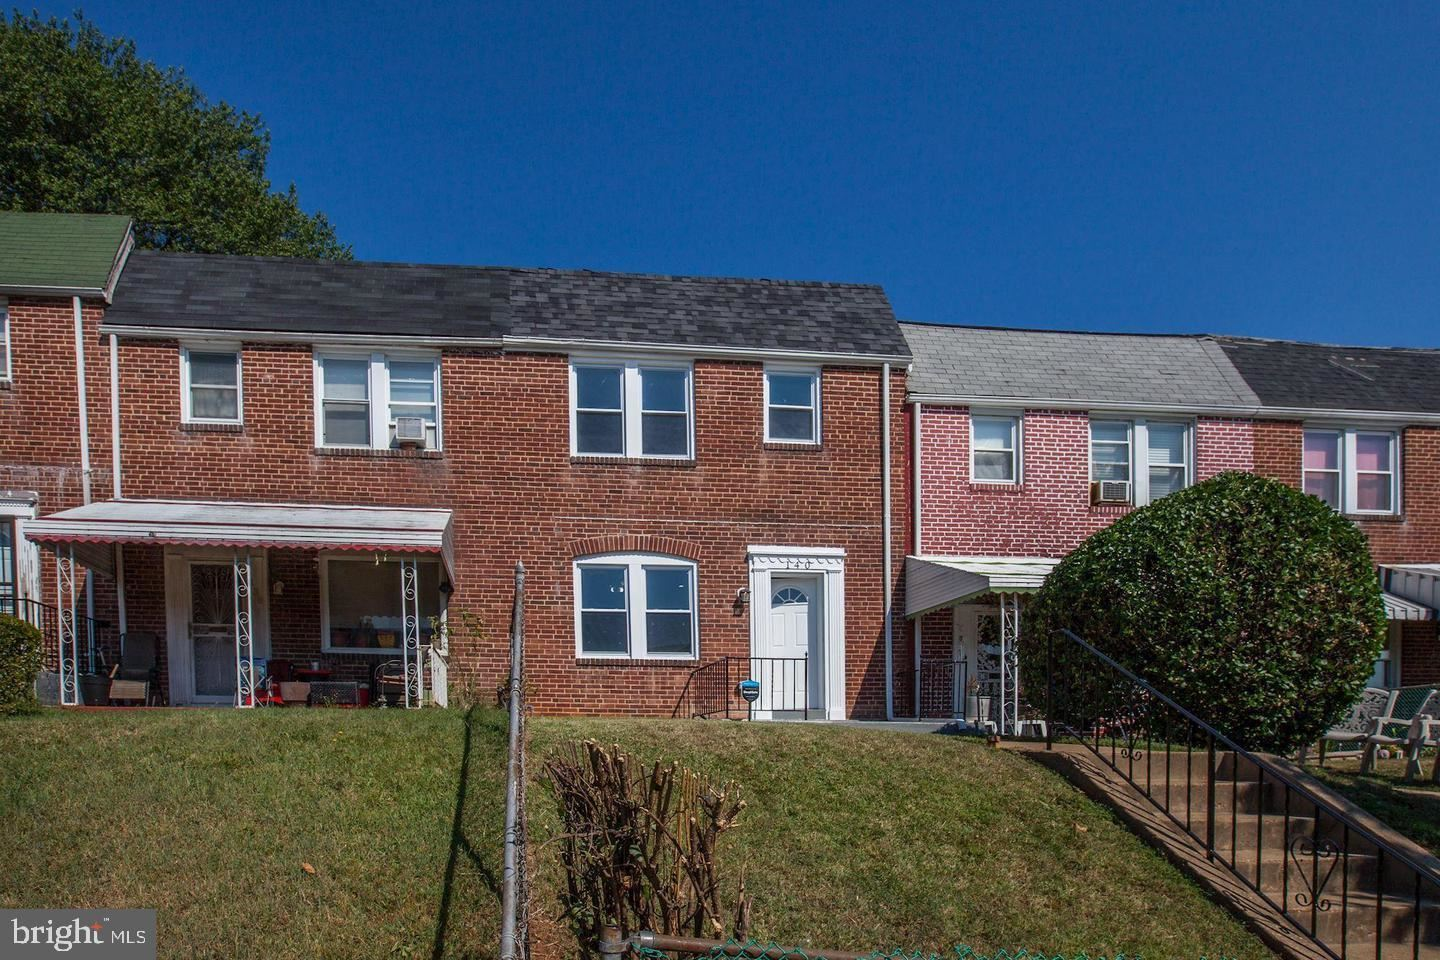 140 N MONASTERY AVE, Baltimore, MD 21229 - MLS#: MDBA549906